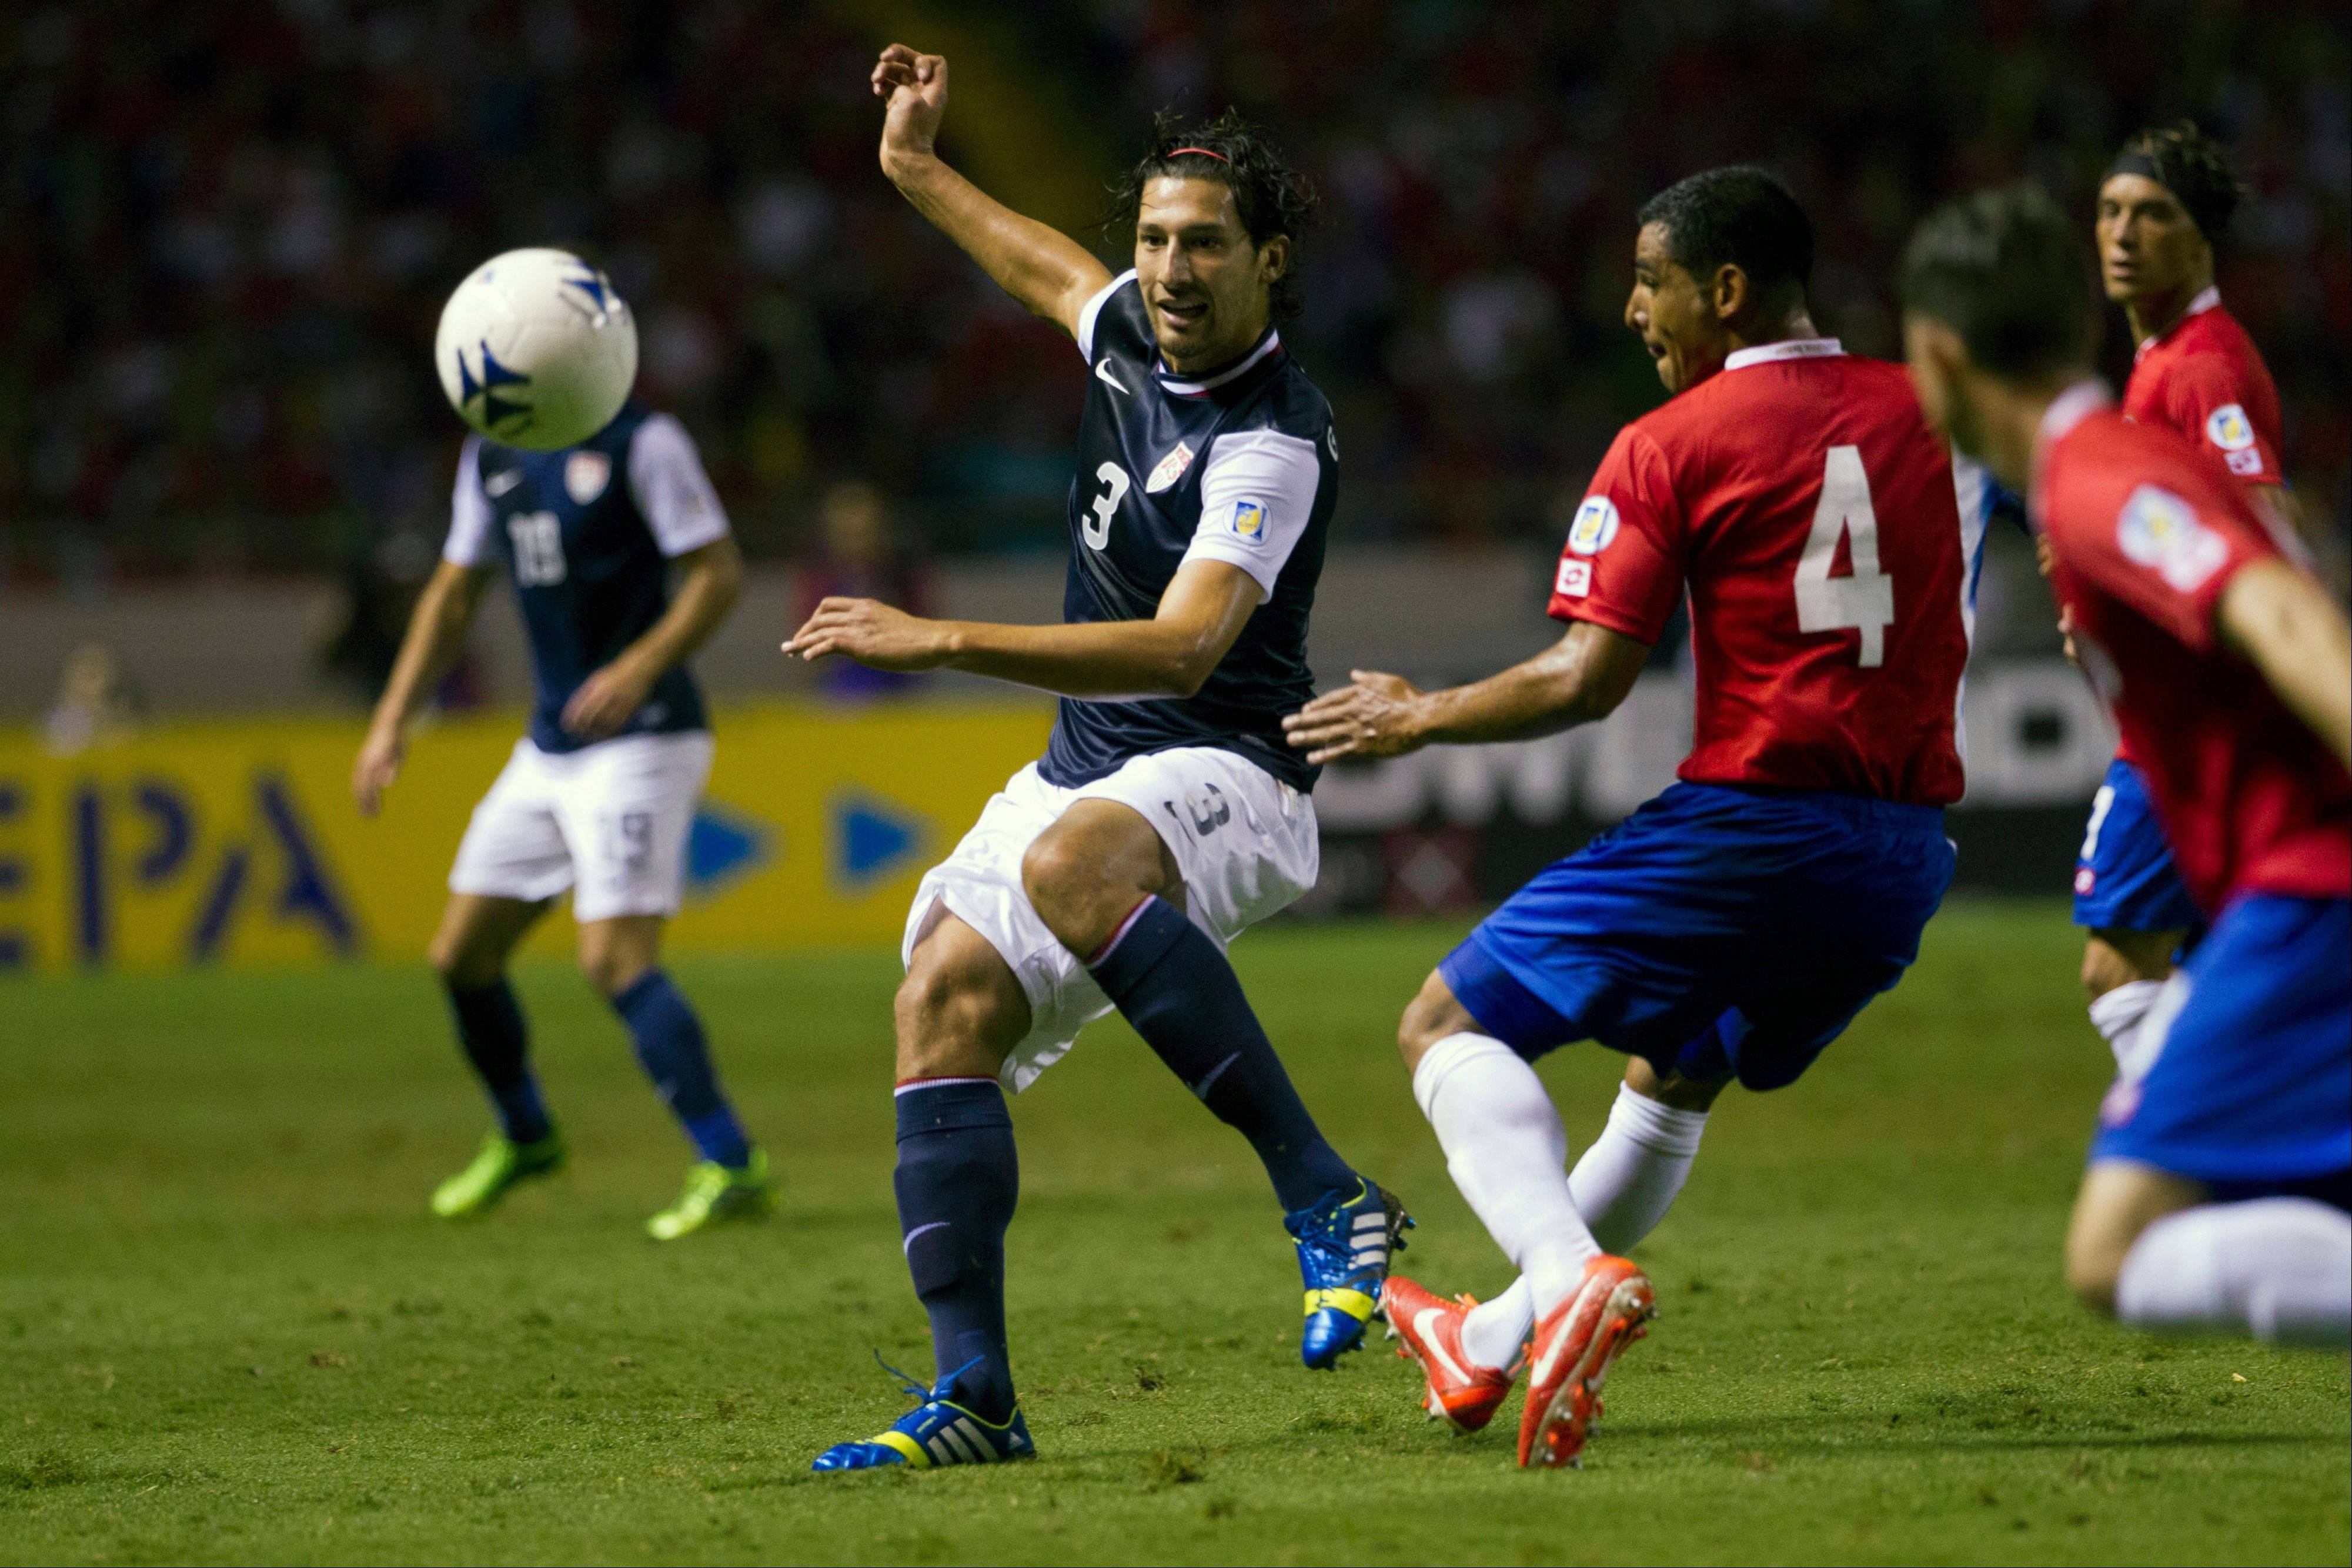 The United States' Omar Gonzalez, left, and Costa Rica's Michael Umana fight for the ball during a World Cup qualifier Friday in San Jose, Costa Rica. The U.S. lost 3-1.